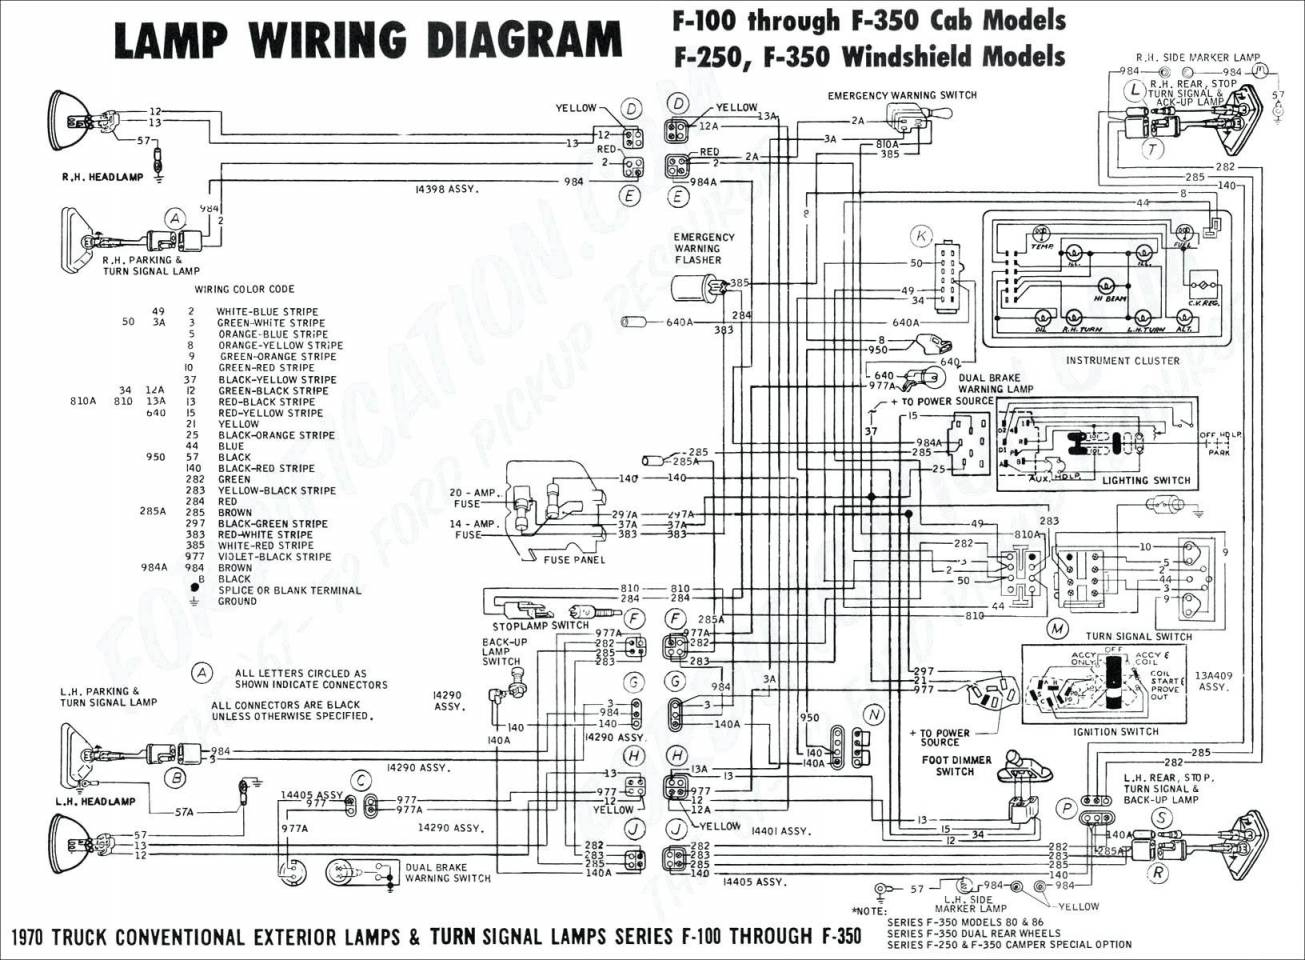 Purpose Of Slip Rings Beautiful Wind Turbine Slip Ring 8 Circuits - Wind Turbine Wiring Diagram